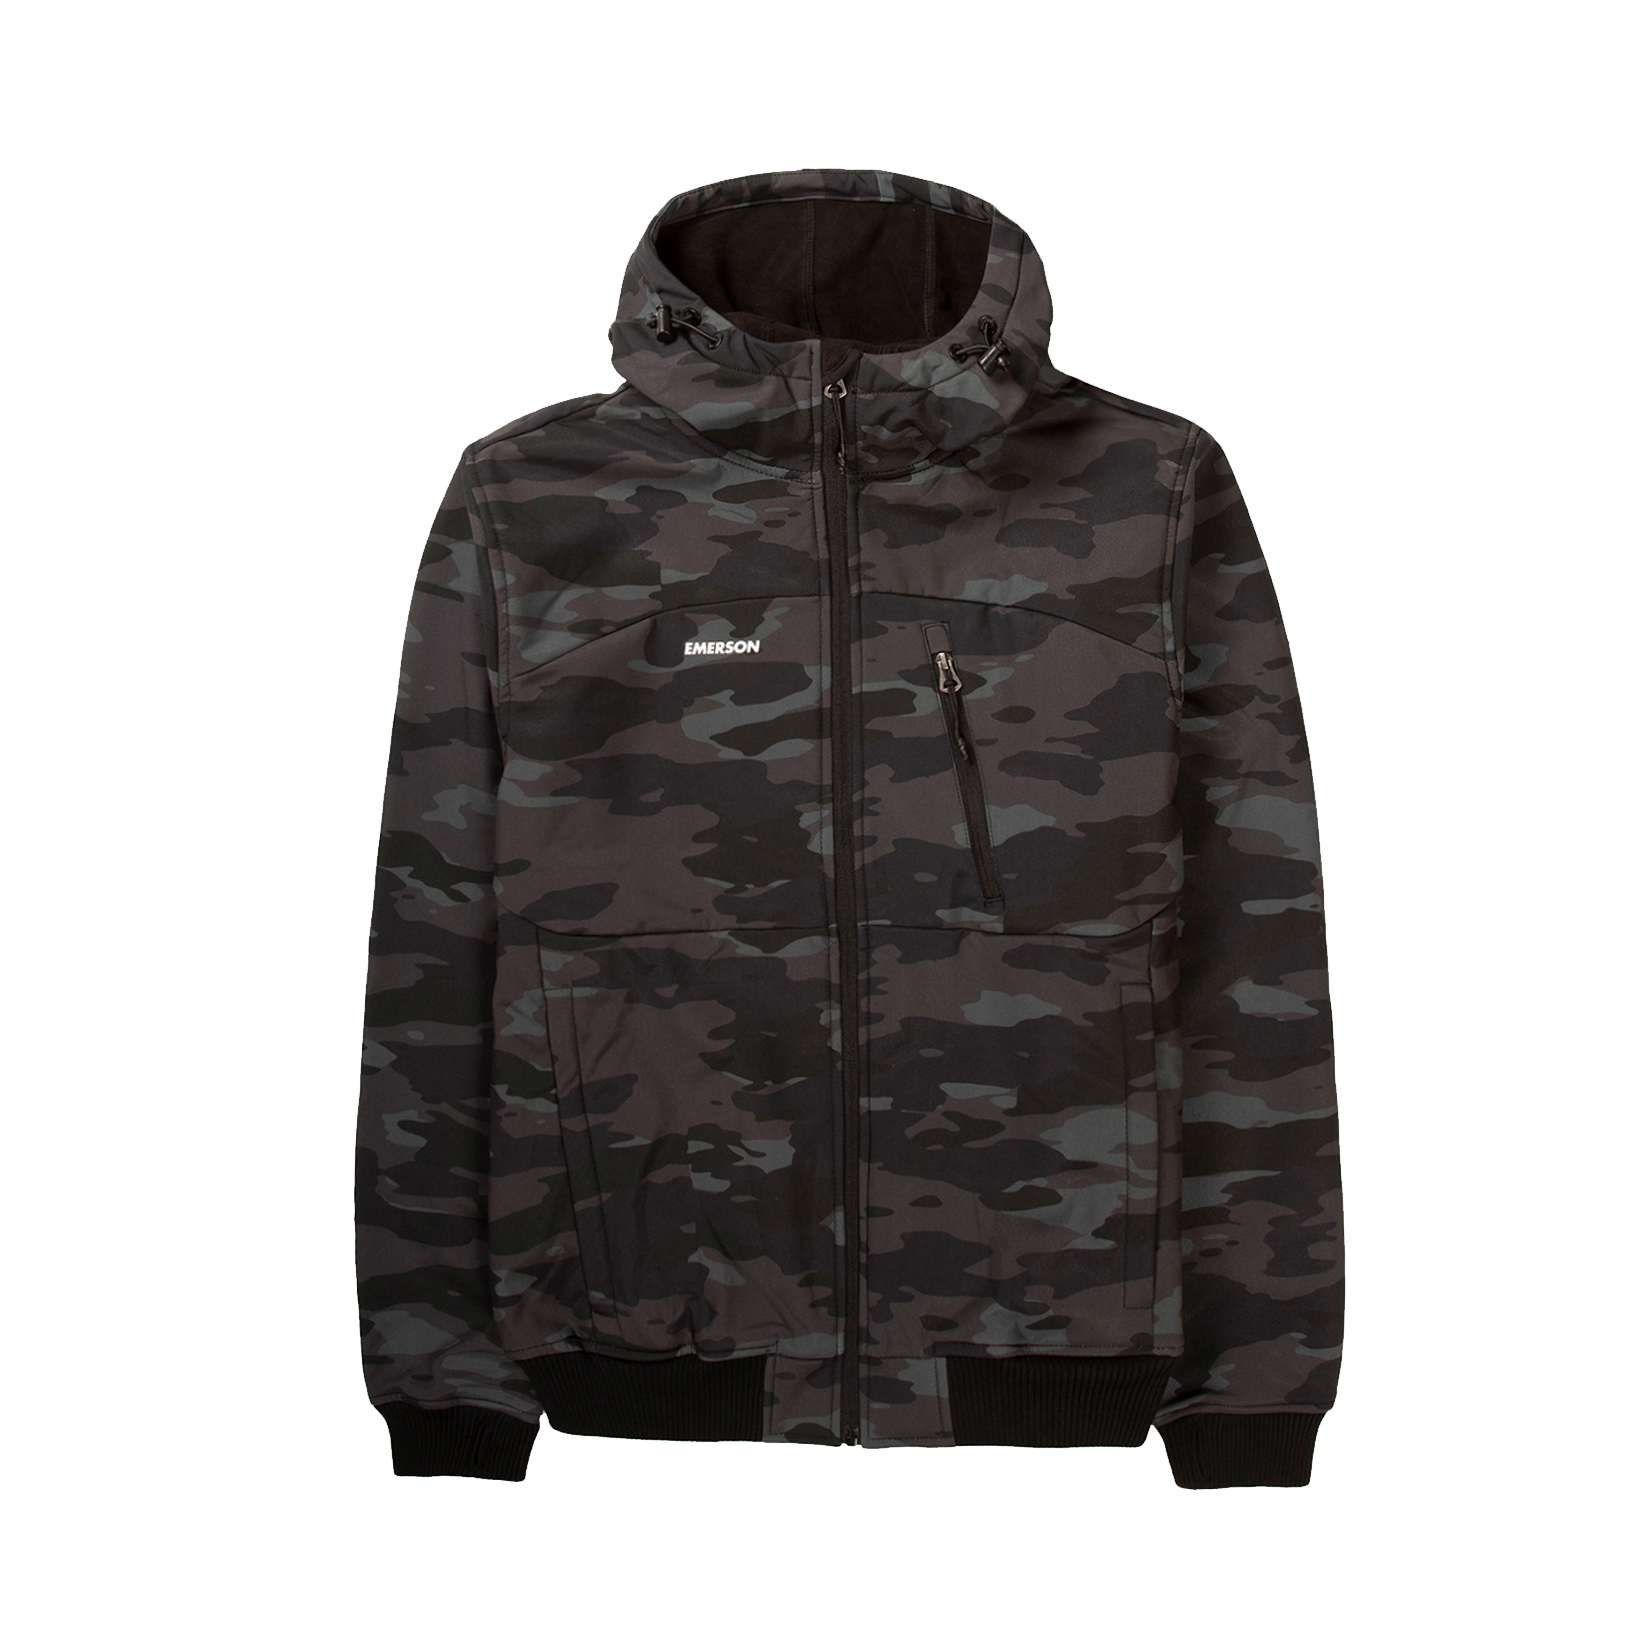 Emerson Hooded Bonded Sport Jacket Camo